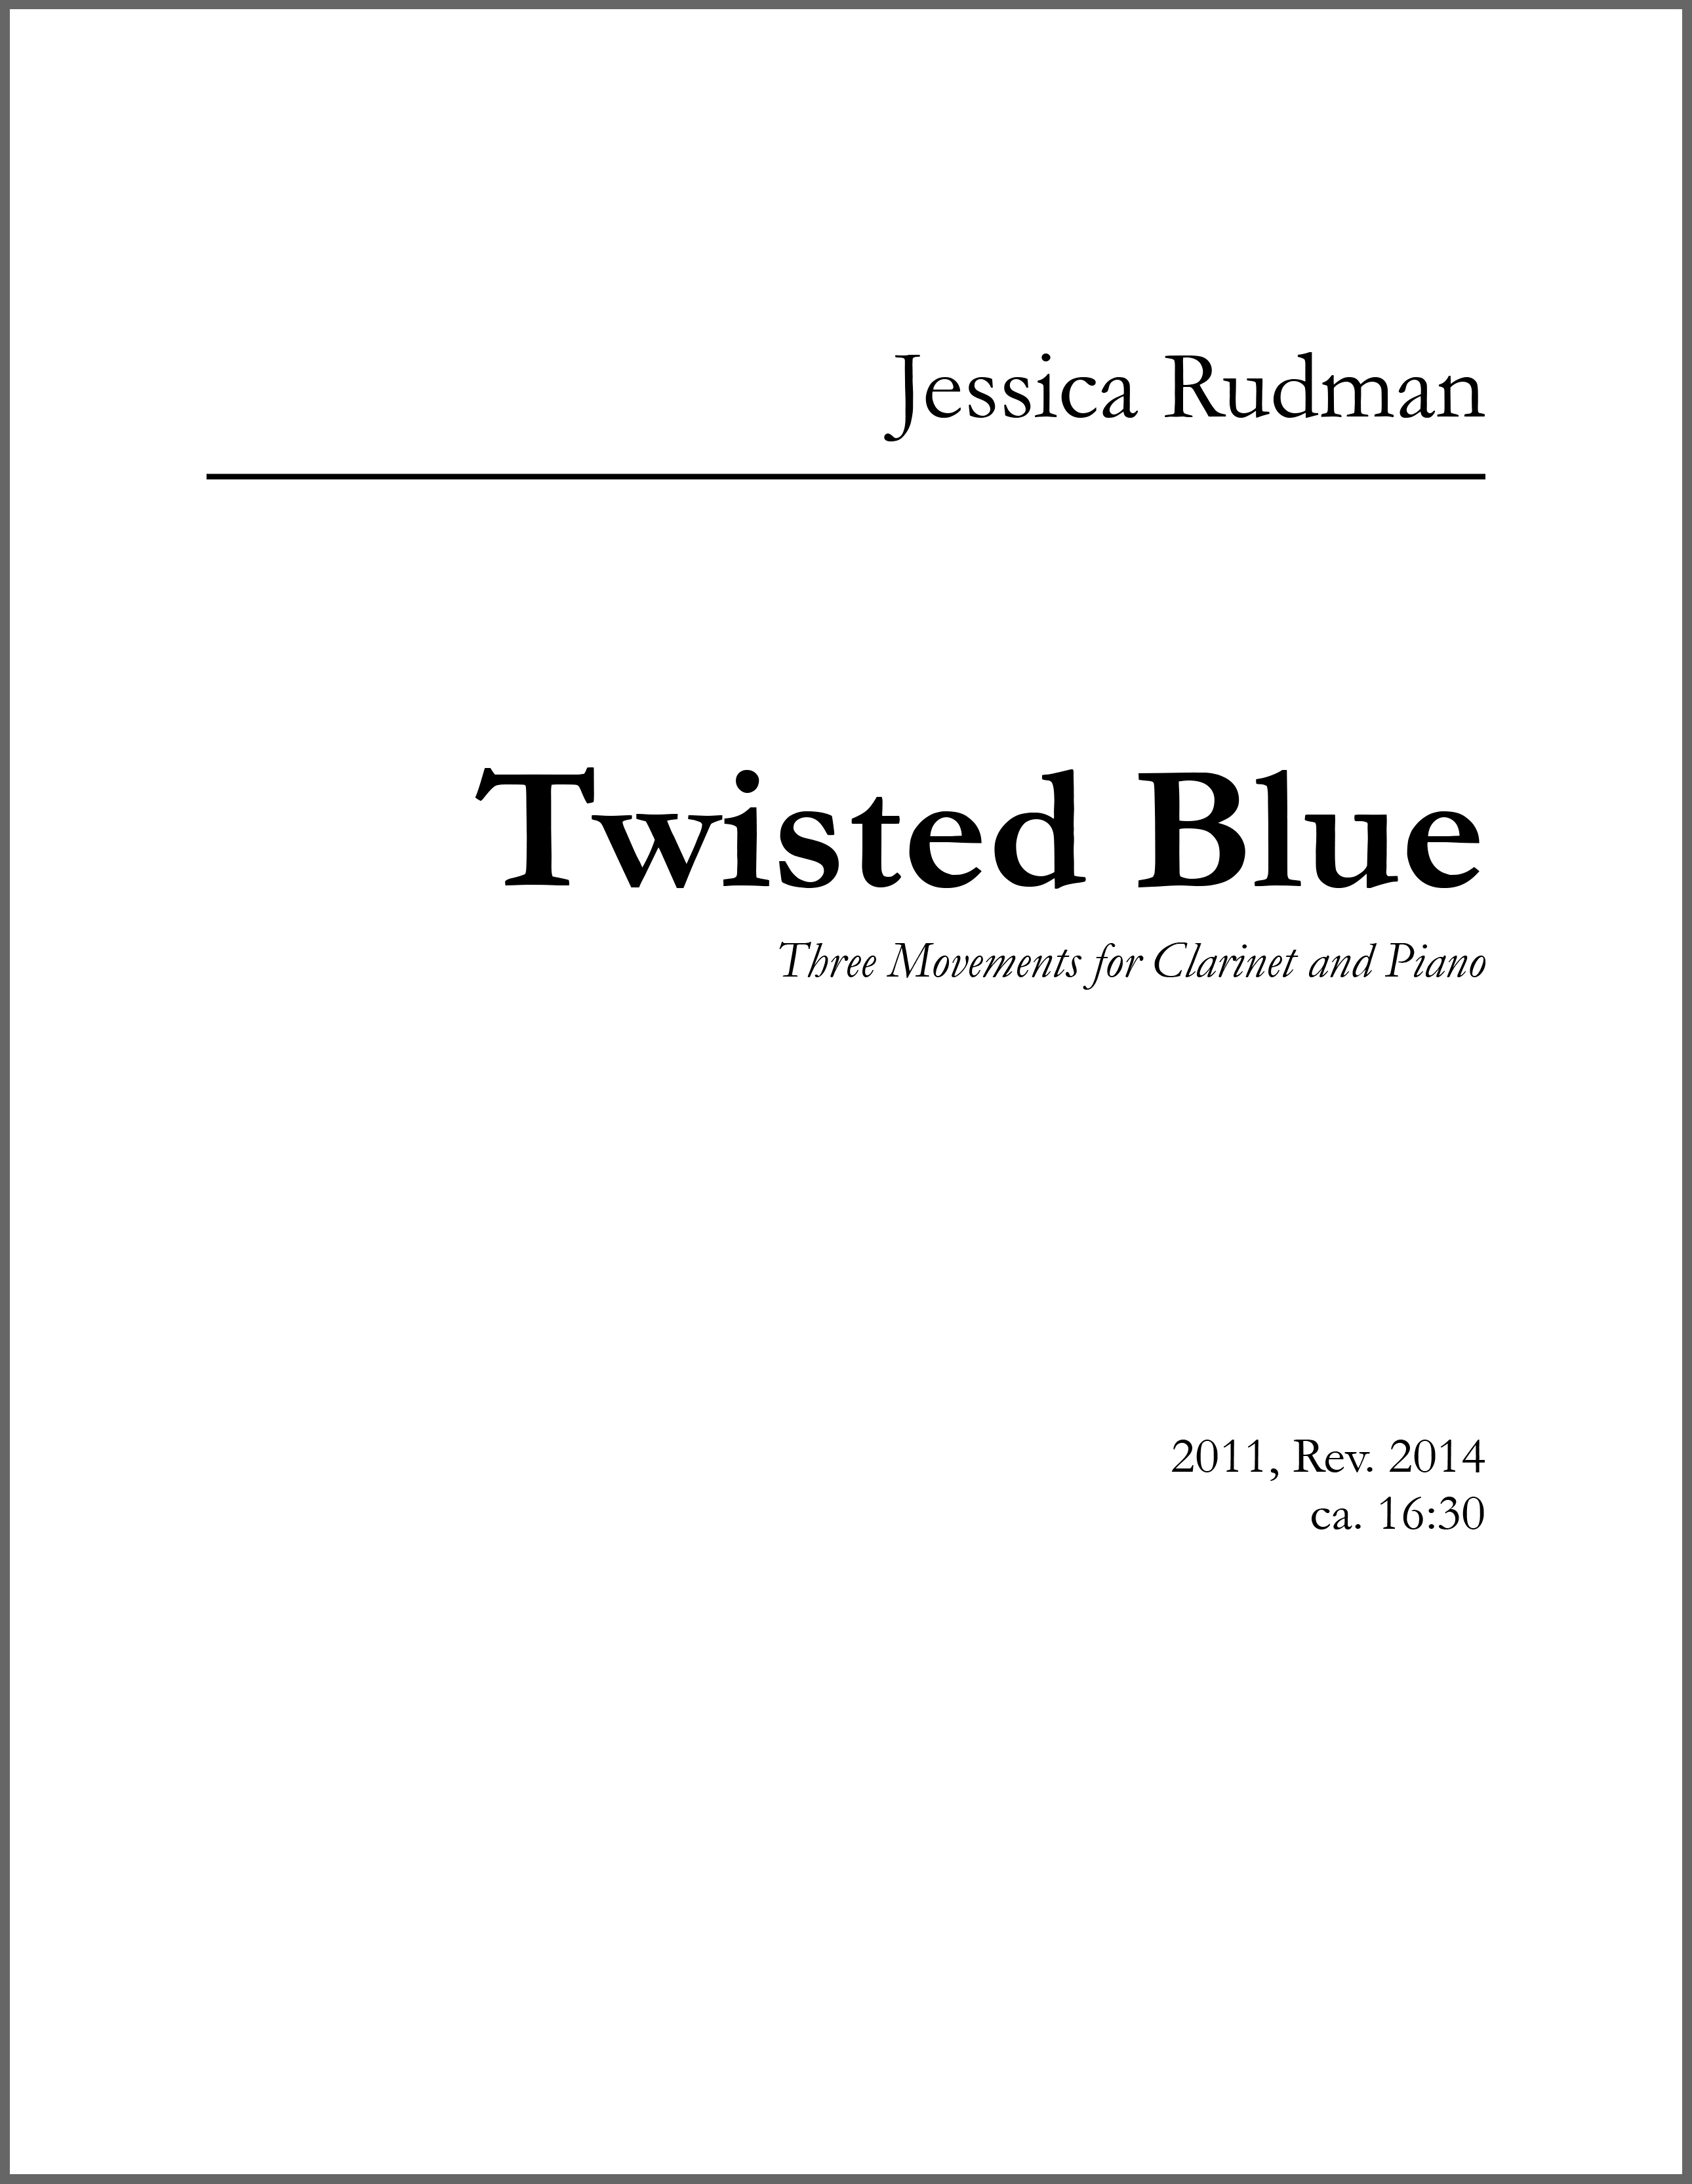 TwistedBlue-PnoRed-Product Image